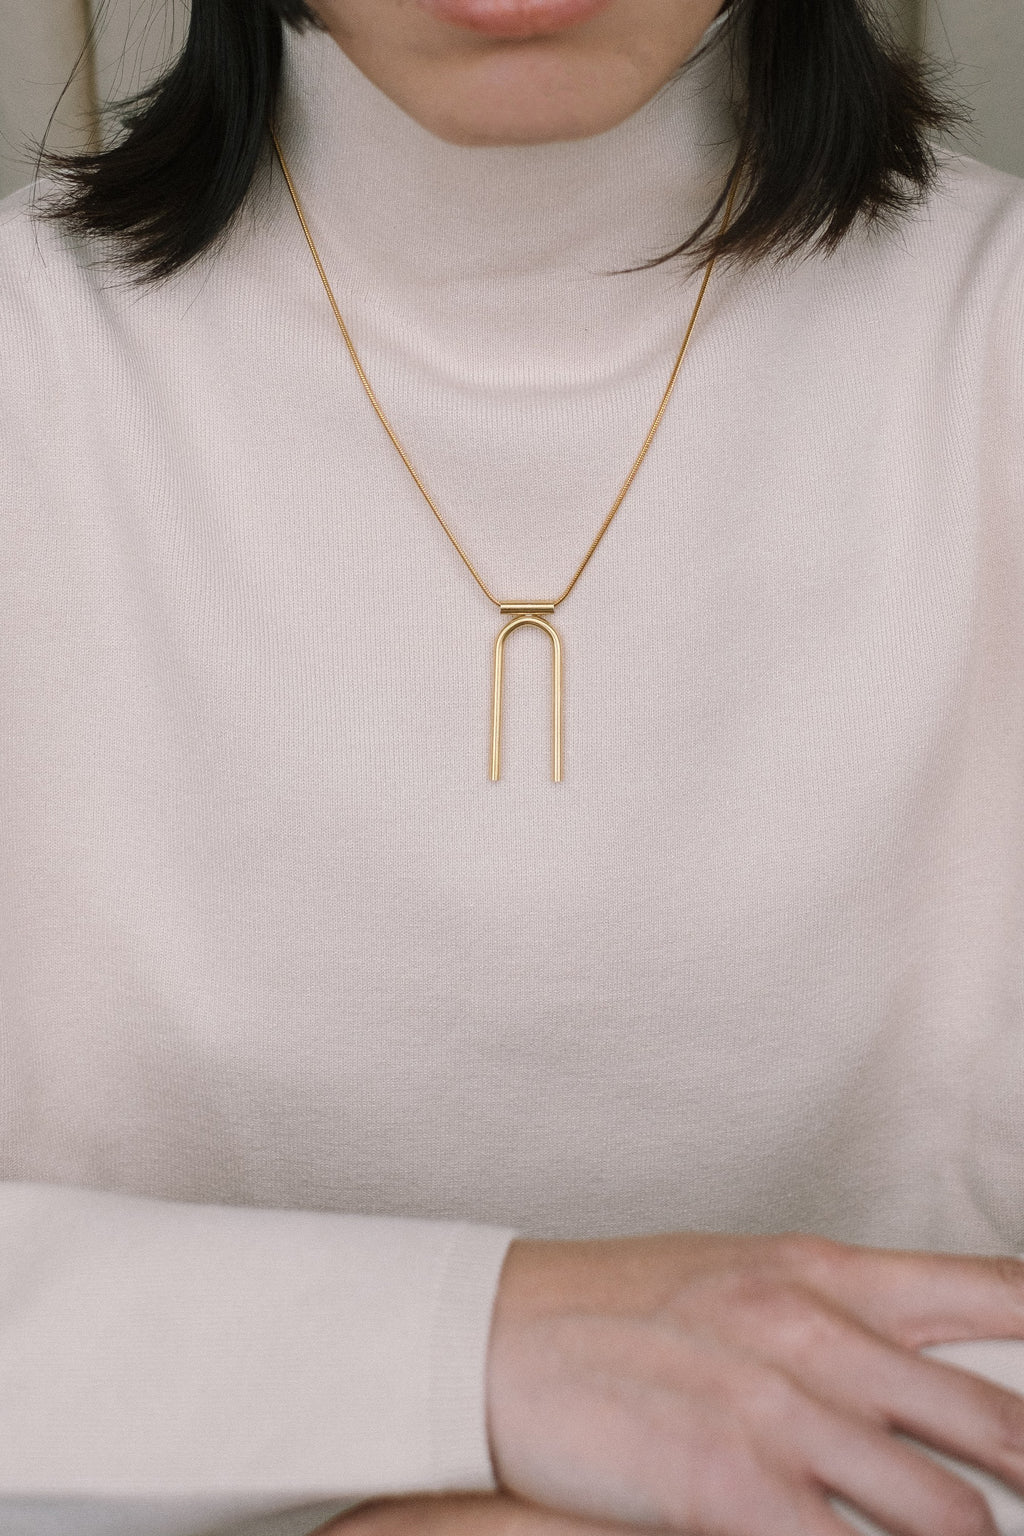 U necklace